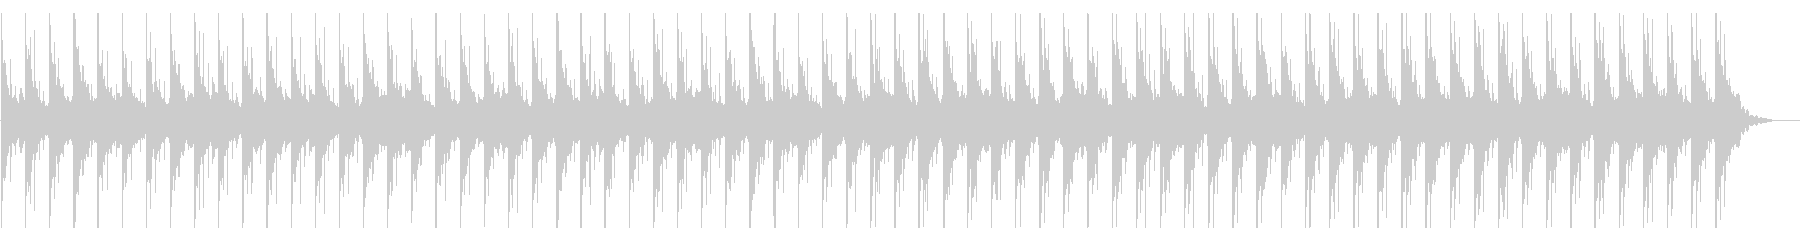 [Without Percus] BGM for news commentary's unreproduced waveform